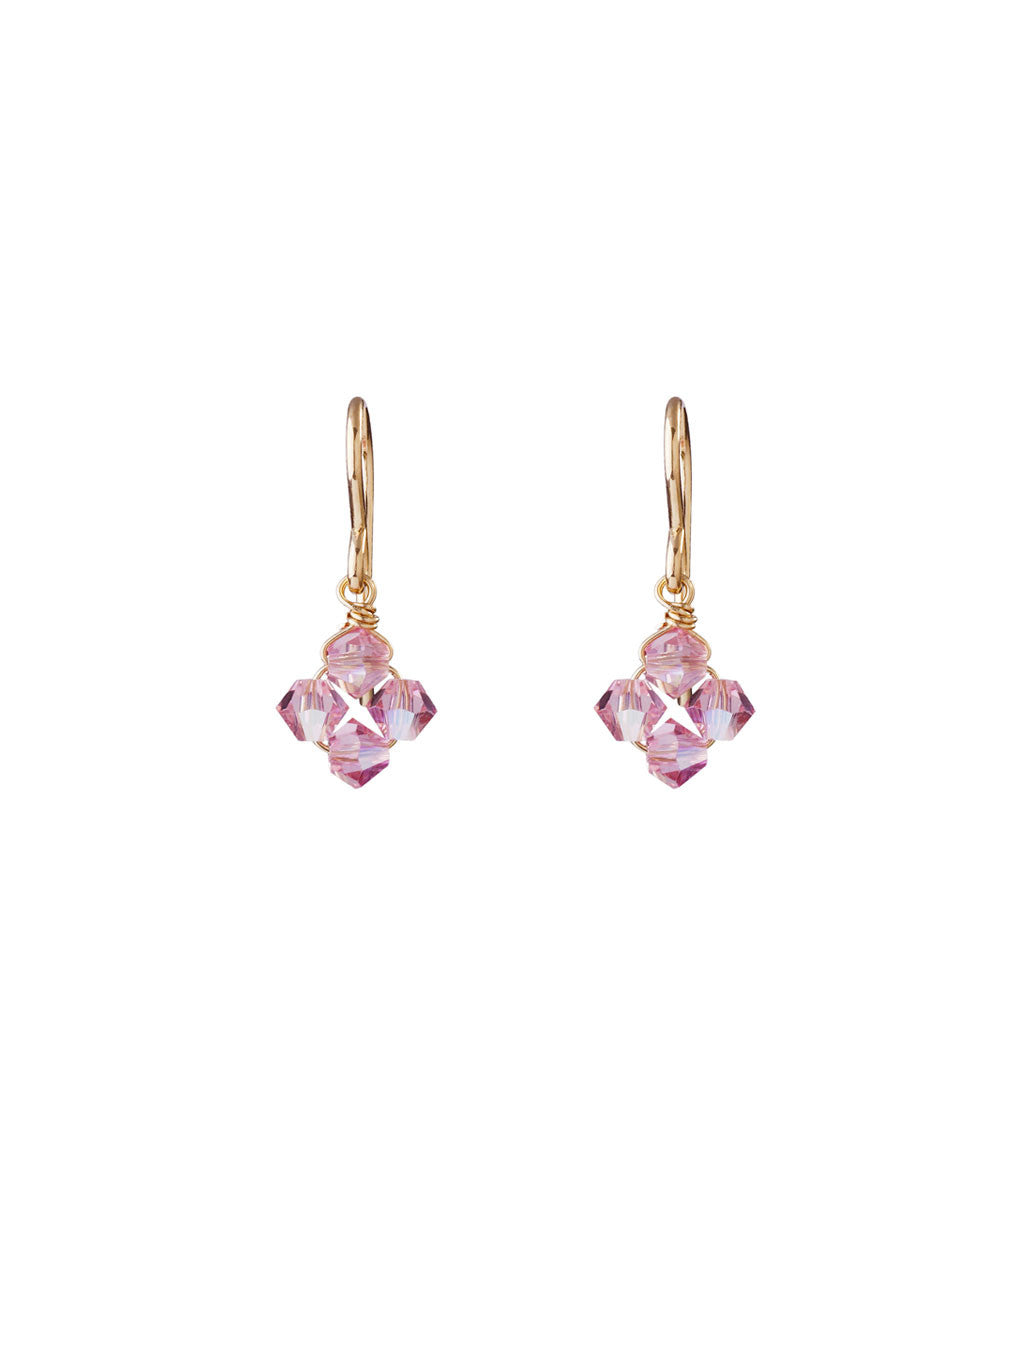 Crystal Diamond Clover Earrings - Light Rose